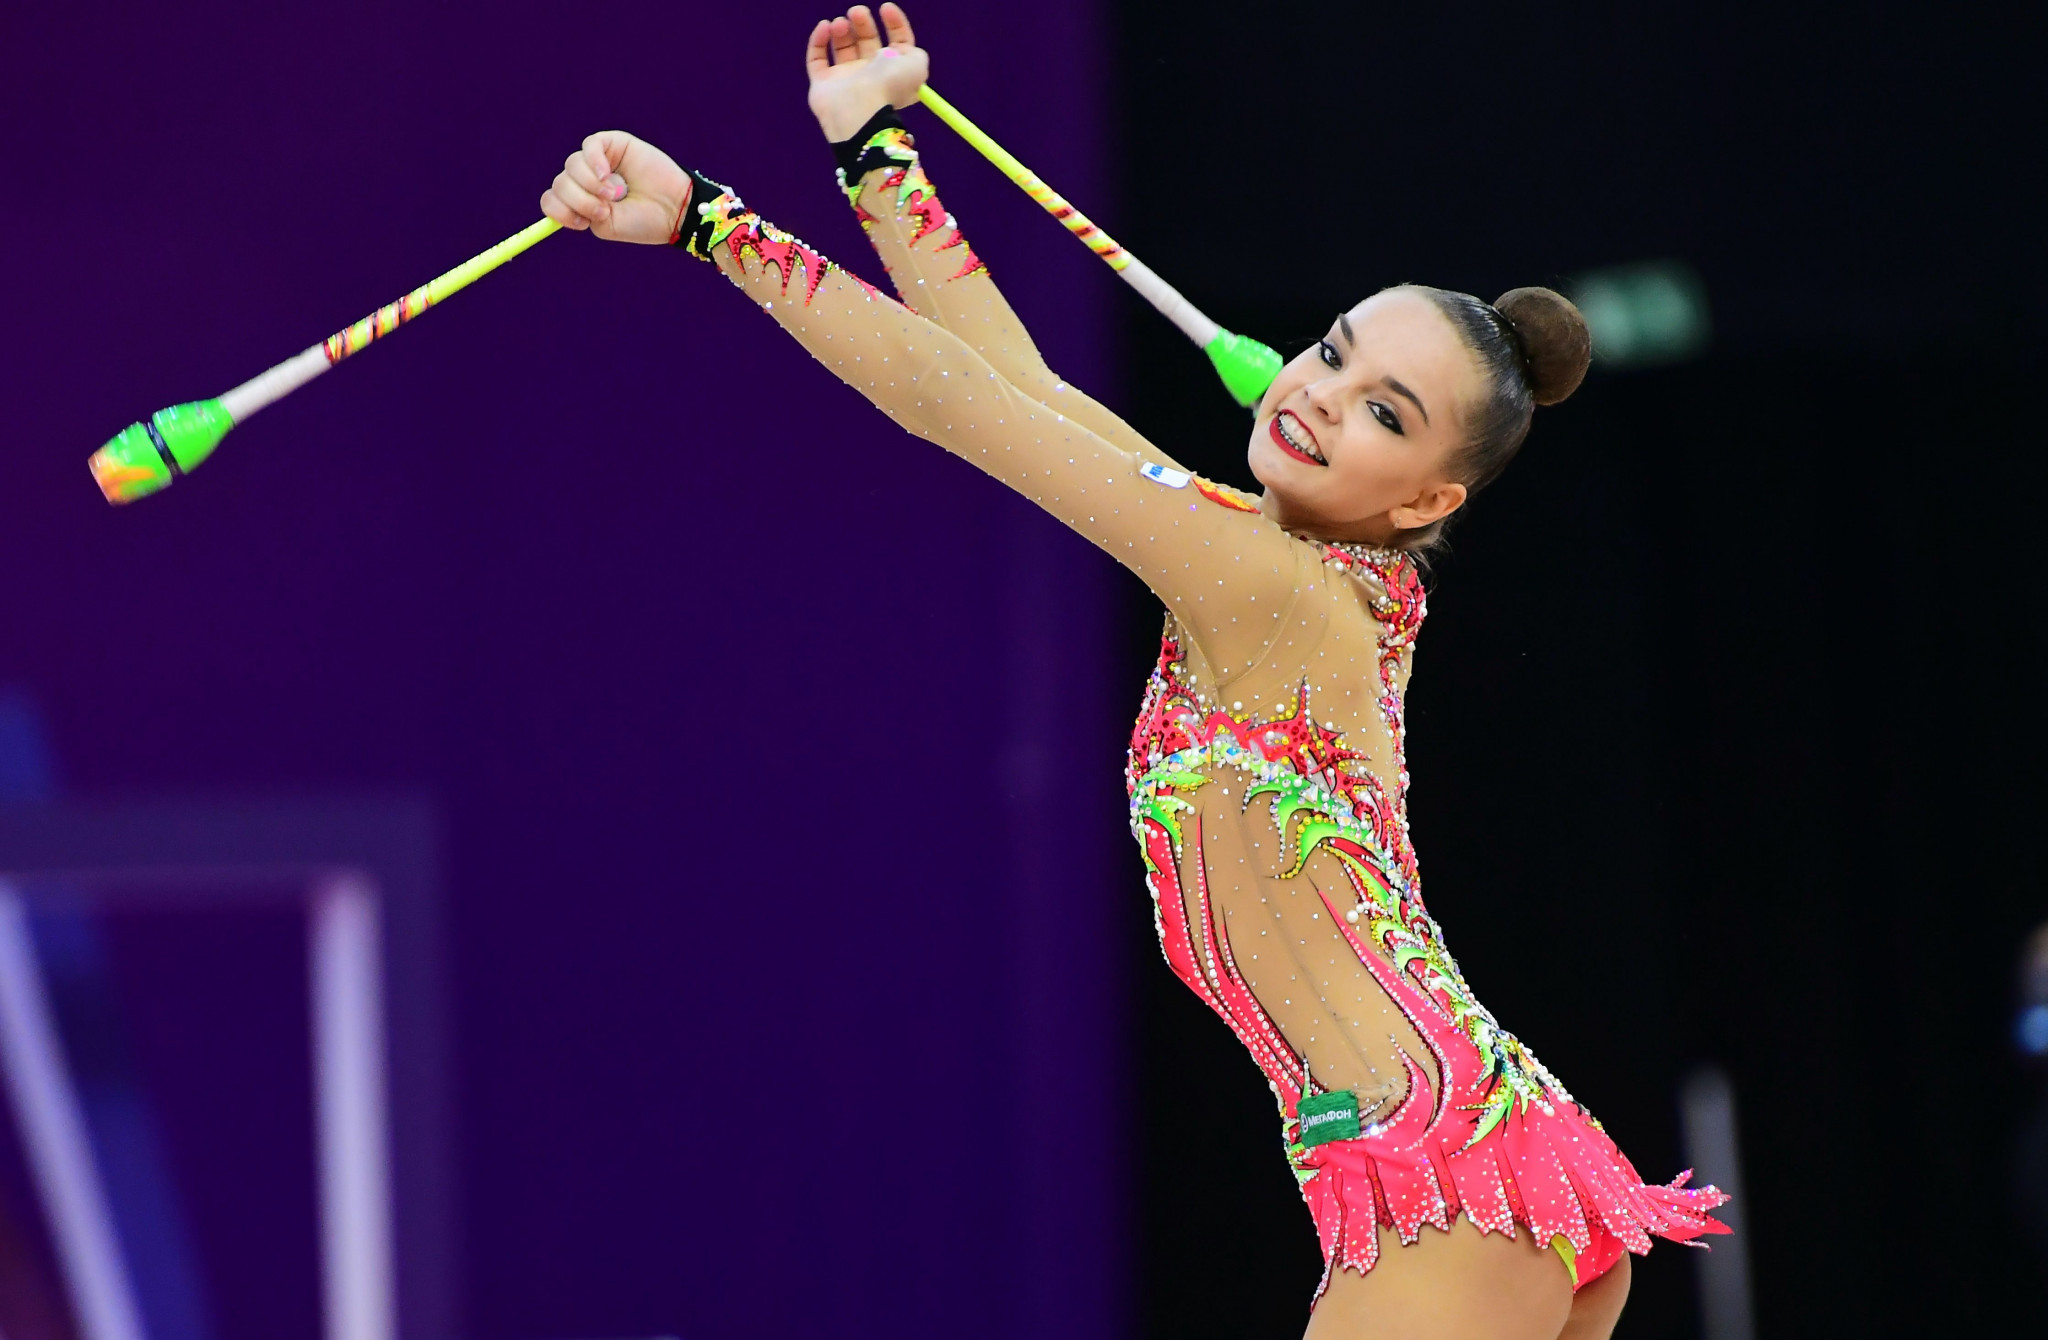 Dina Averina topped the clubs qualifying with the finals taking place tomorrow evening ©Getty Images